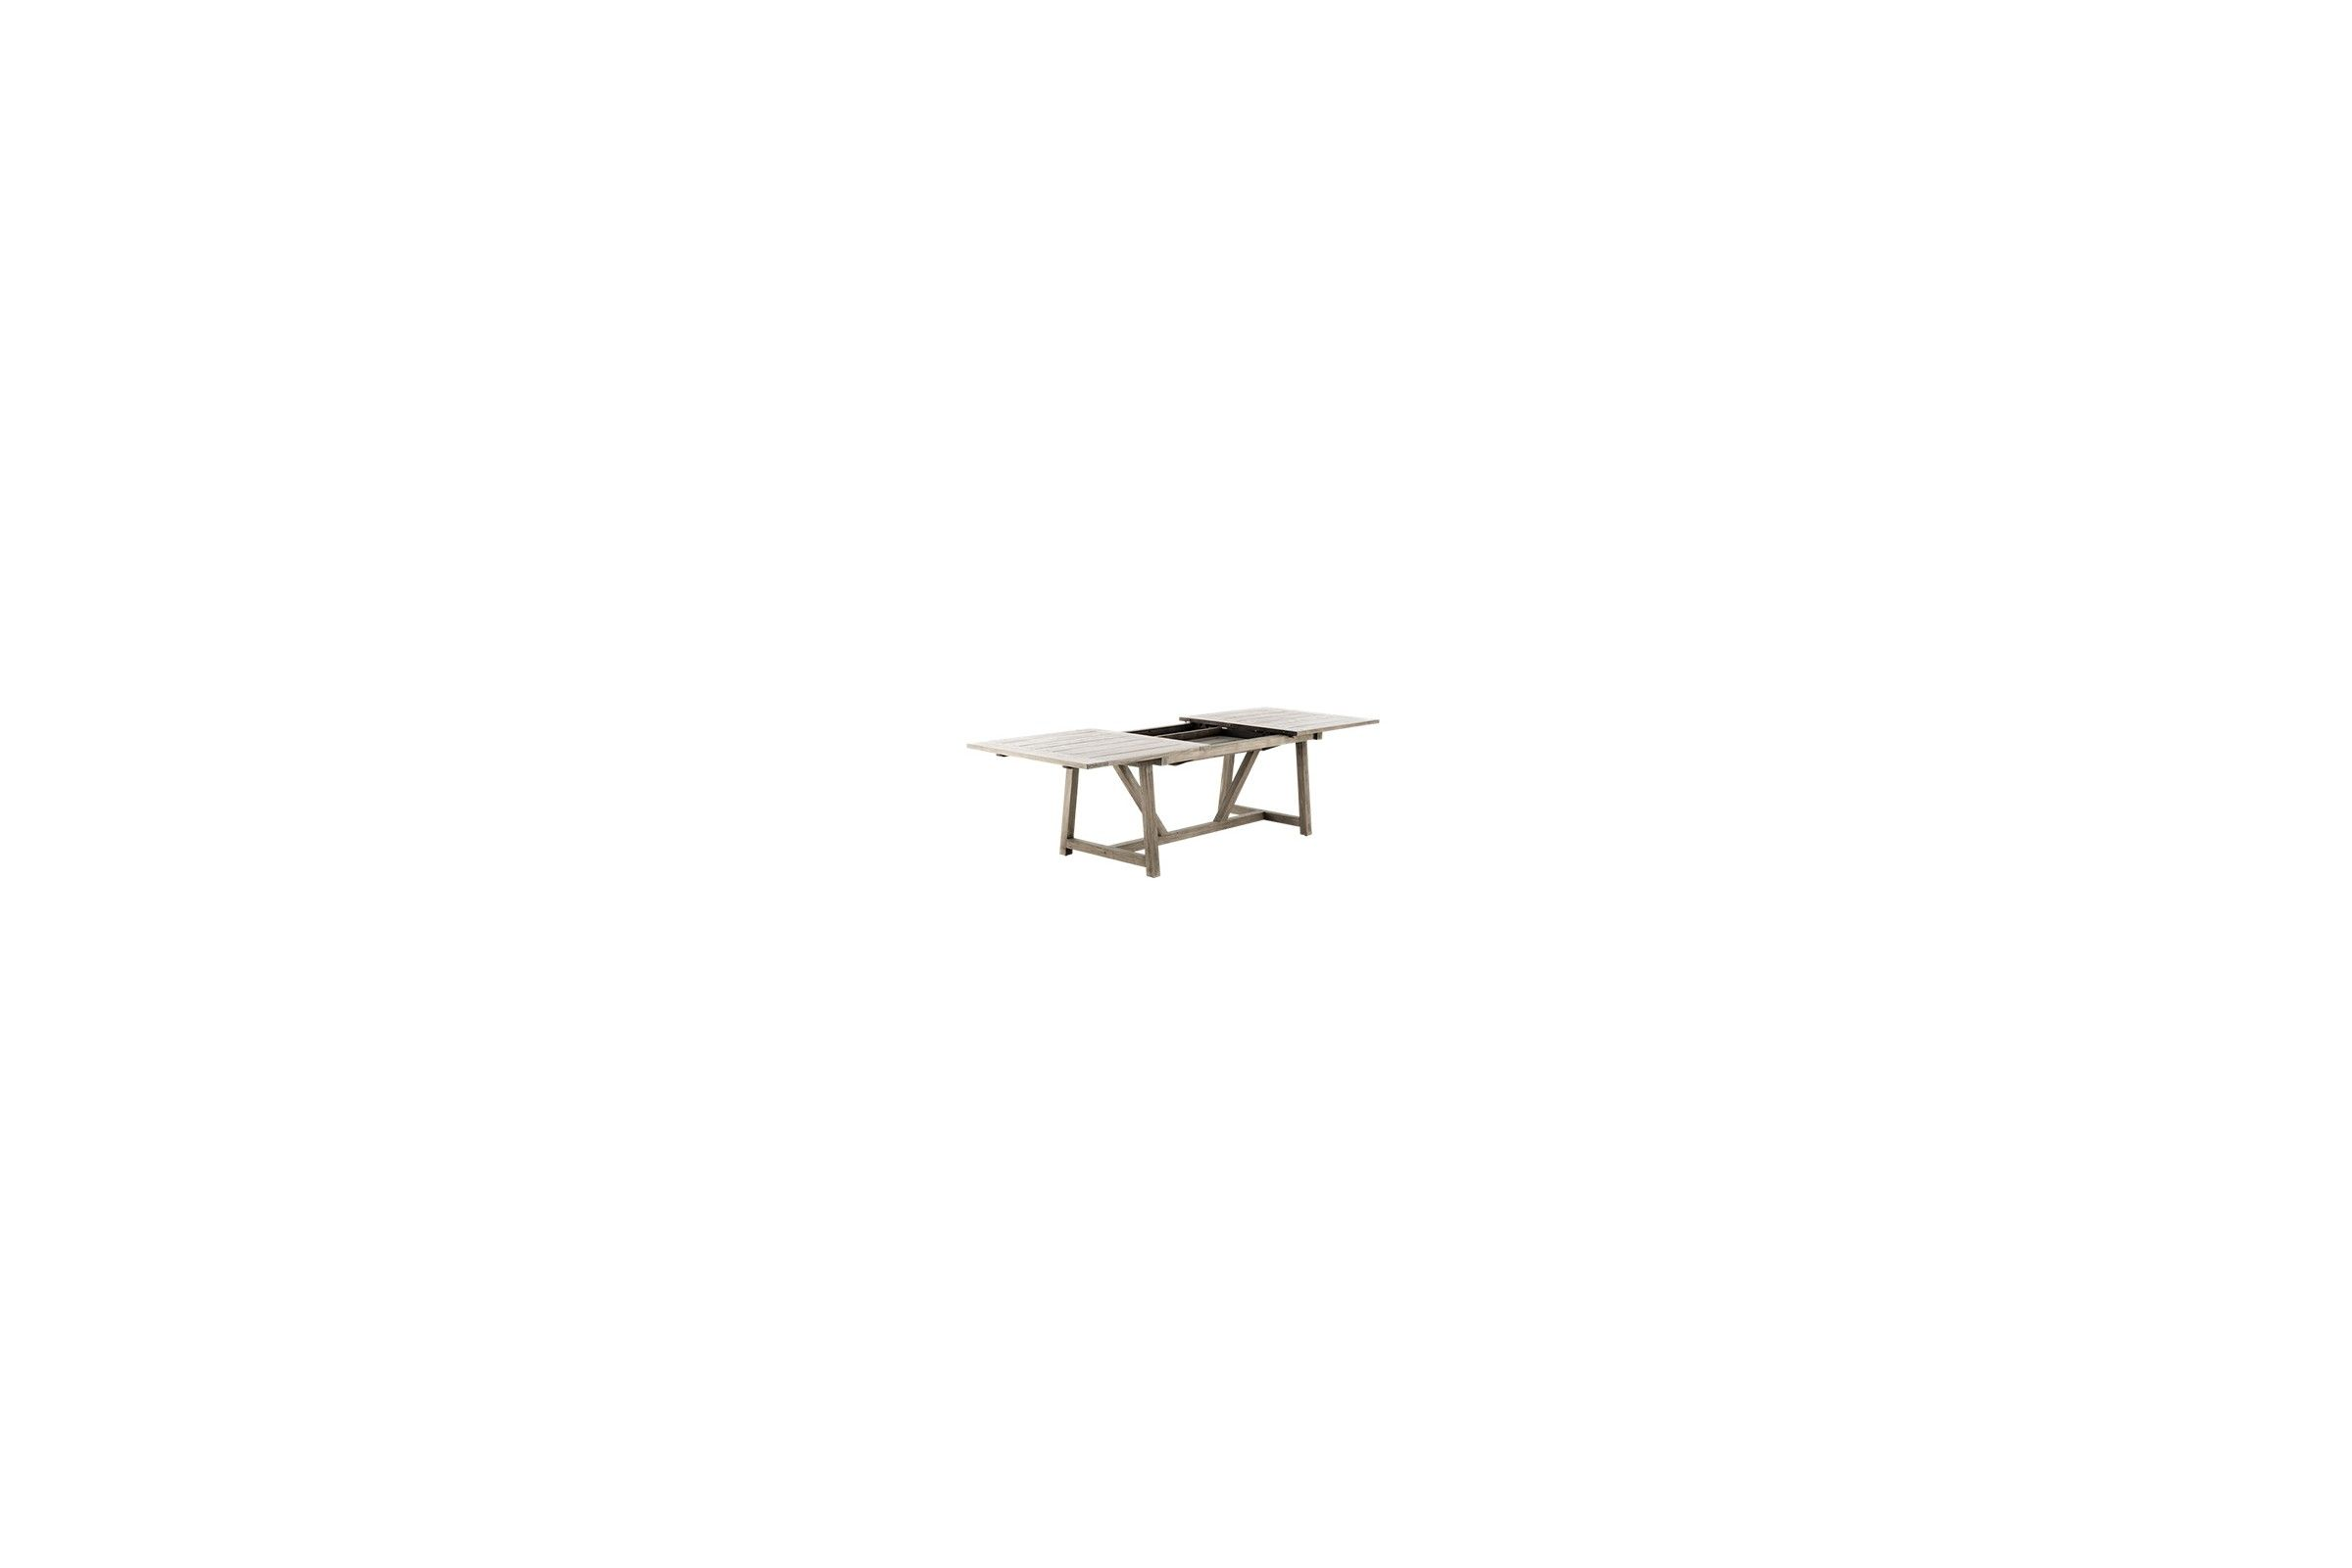 Beautiful table de jardin avec rallonge suisse photos - Table jardin aluminium avec rallonge ...